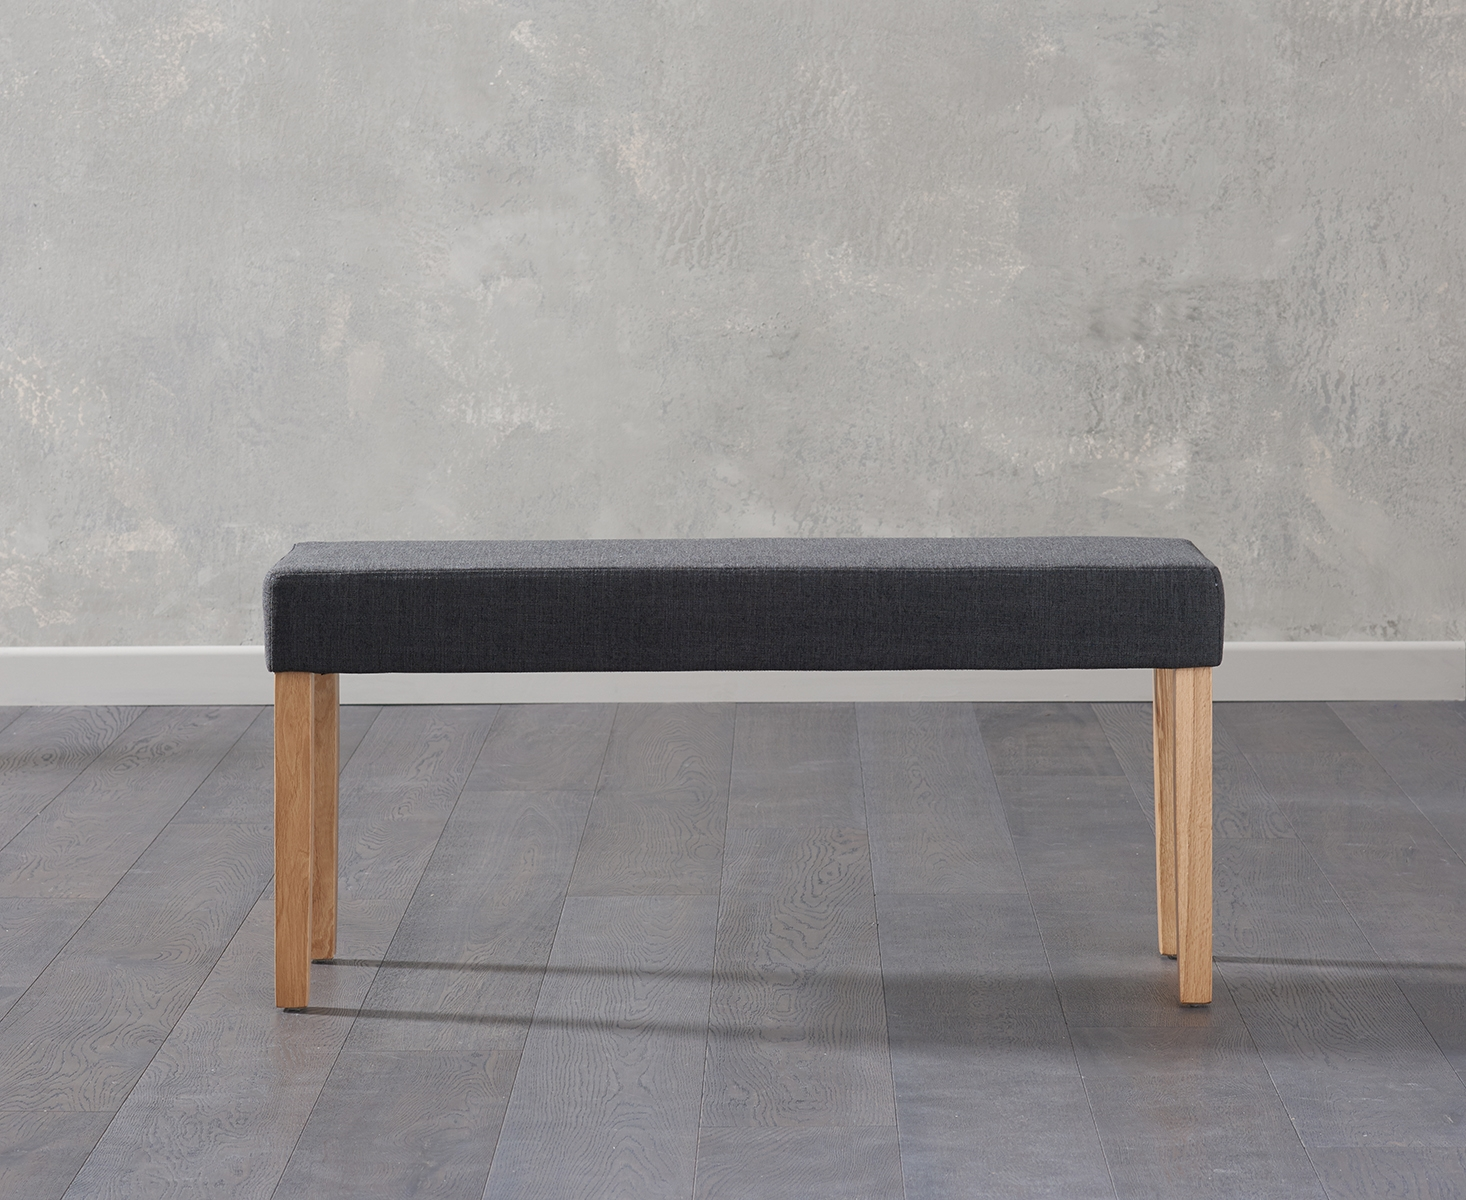 An image of Mia Small Black Bench